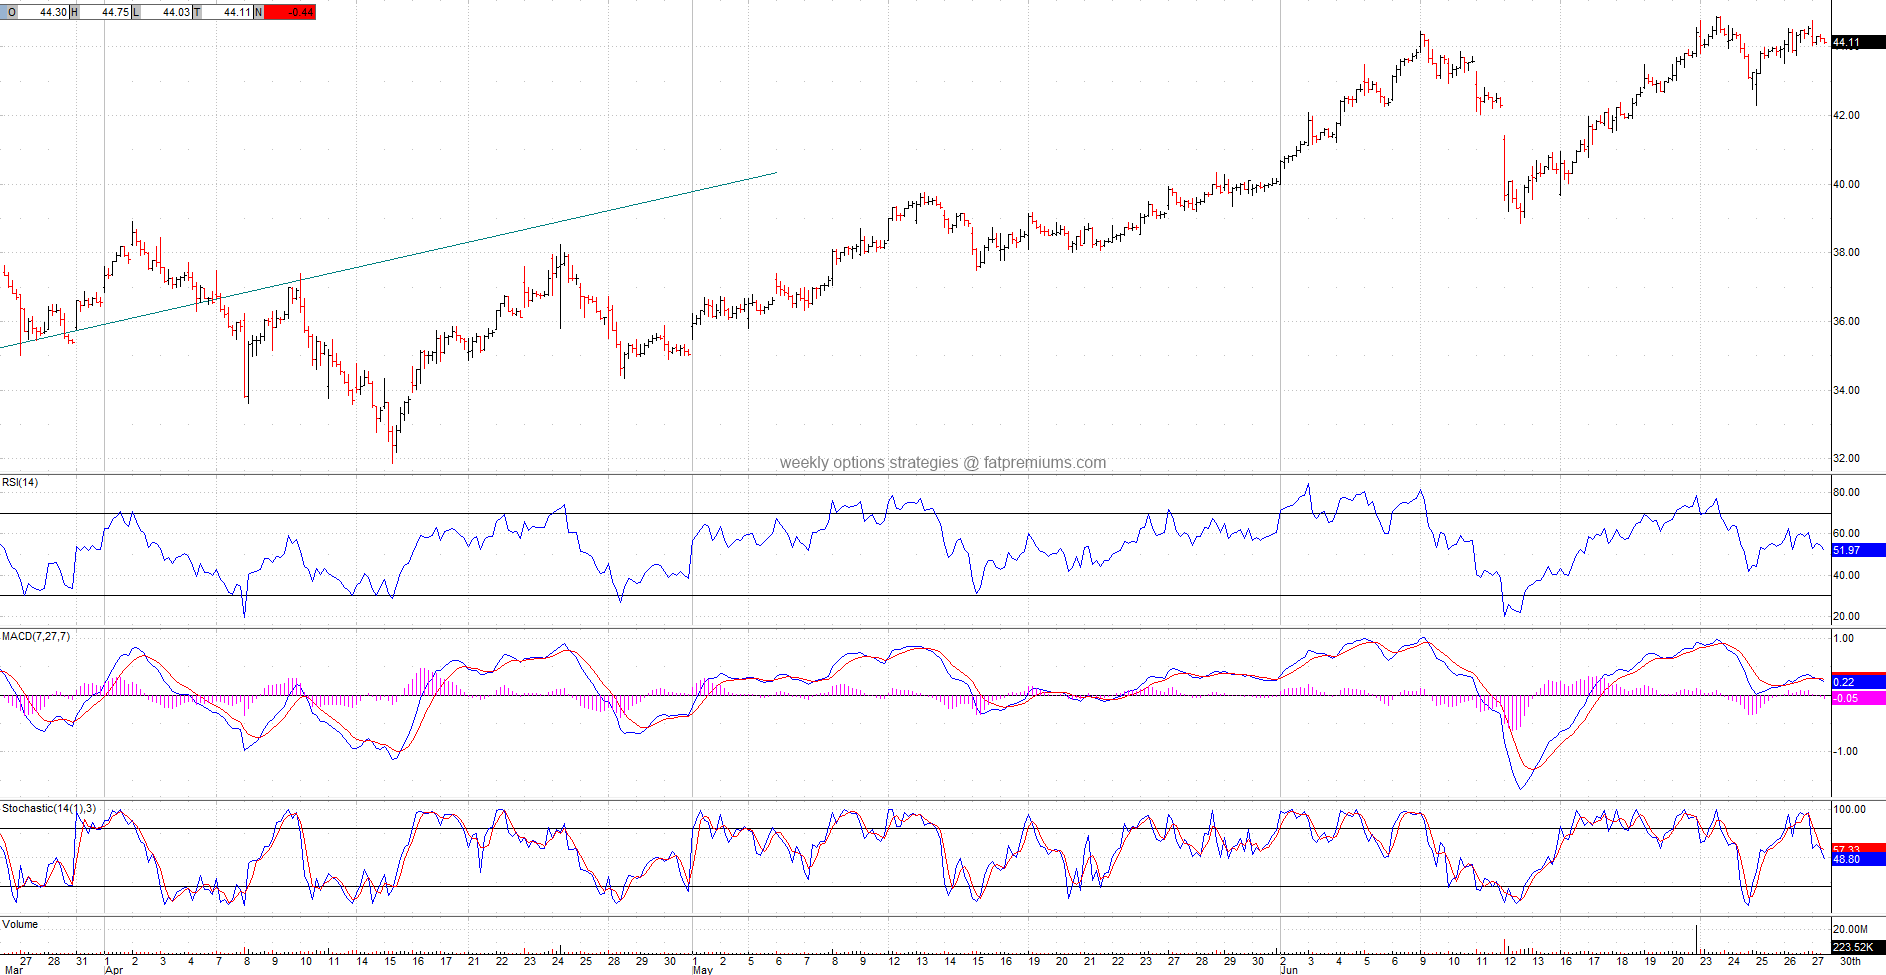 American Airlines Group, Inc. (NASDAQ:AAL) Hourly Chart (2014-06-27) Bearish